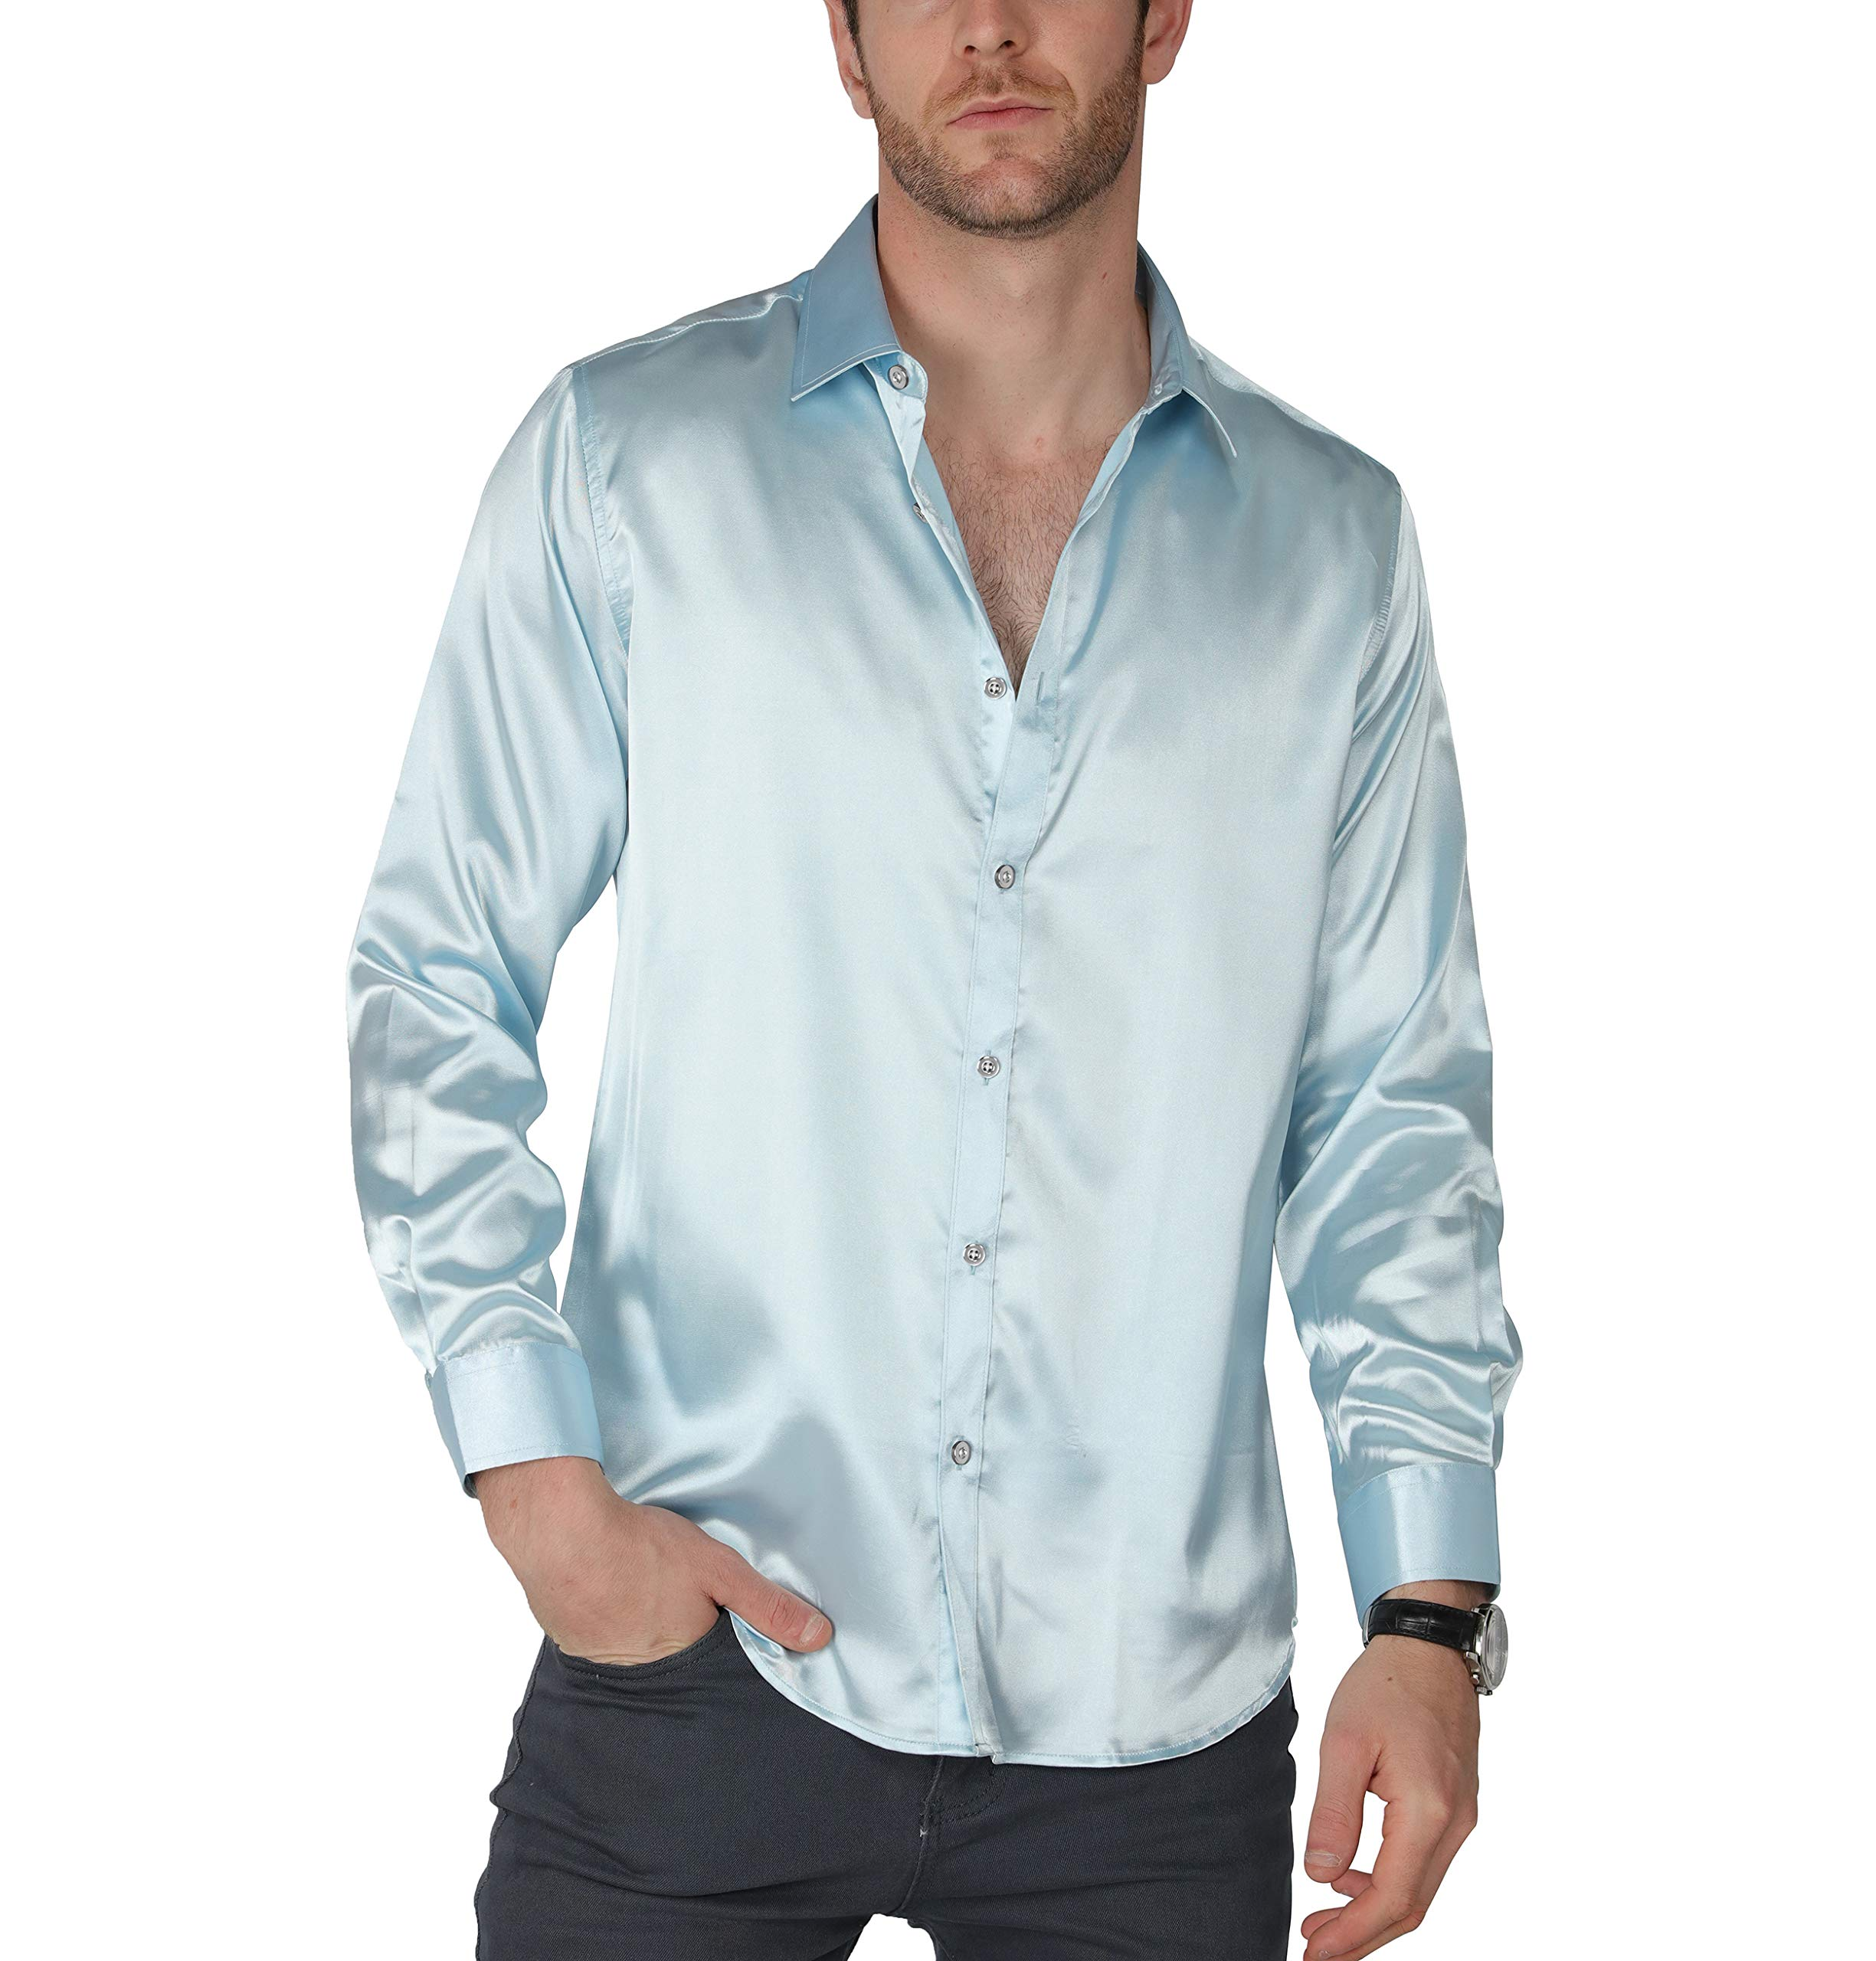 VICALLED Men's Satin Luxury Dress Shirt Slim Fit Silk Casual Dance Party Long Sleeve Fitted Wrinkle Free Tuxedo Shirts (Light Blue, S) by VICALLED